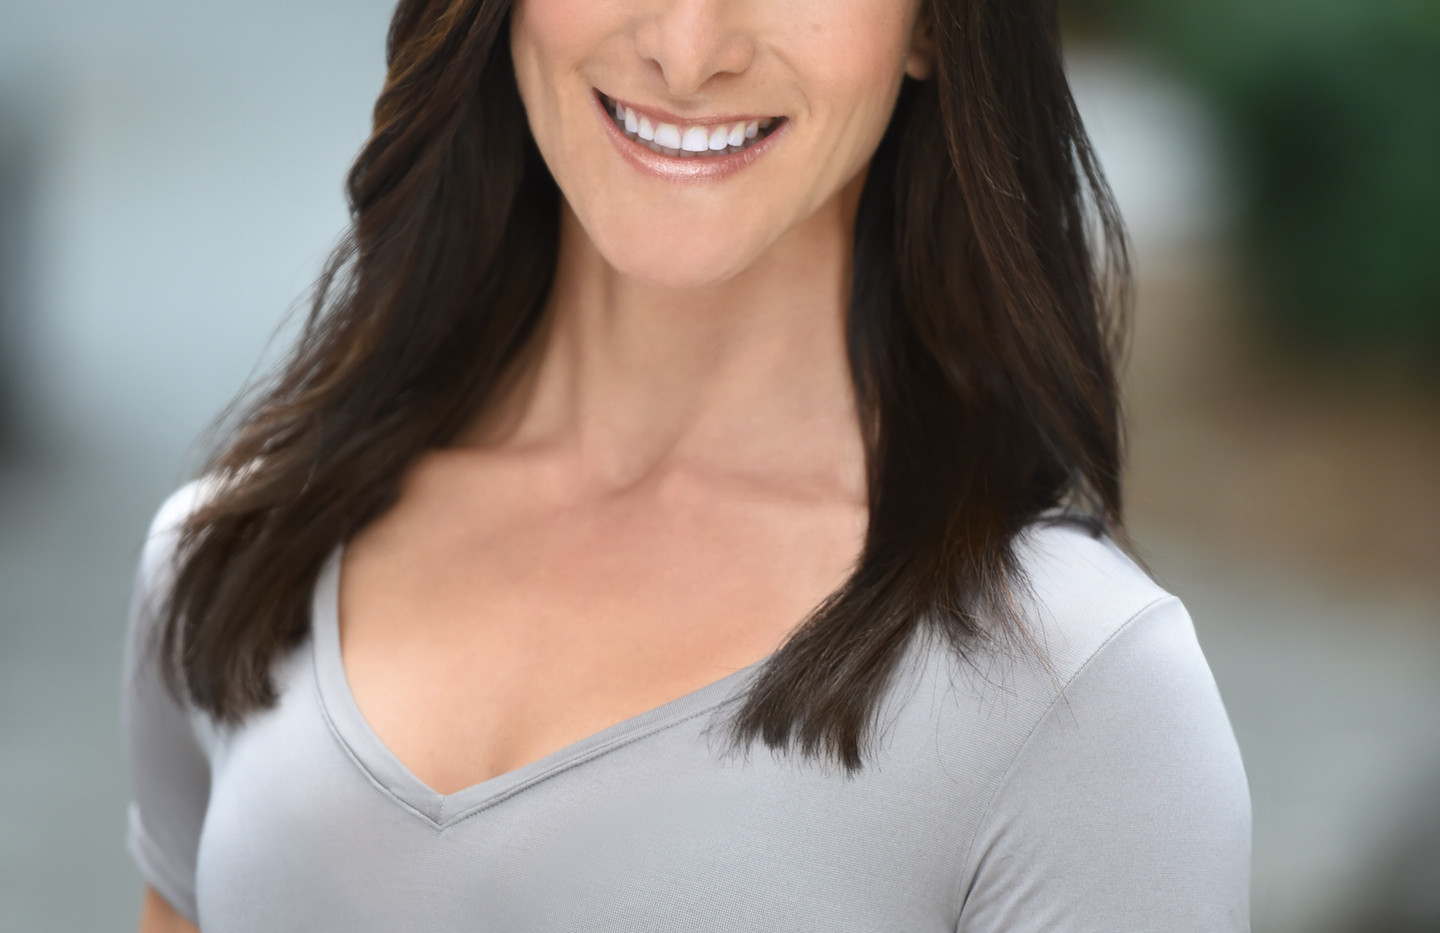 Courtney Sanello Headshot Smile